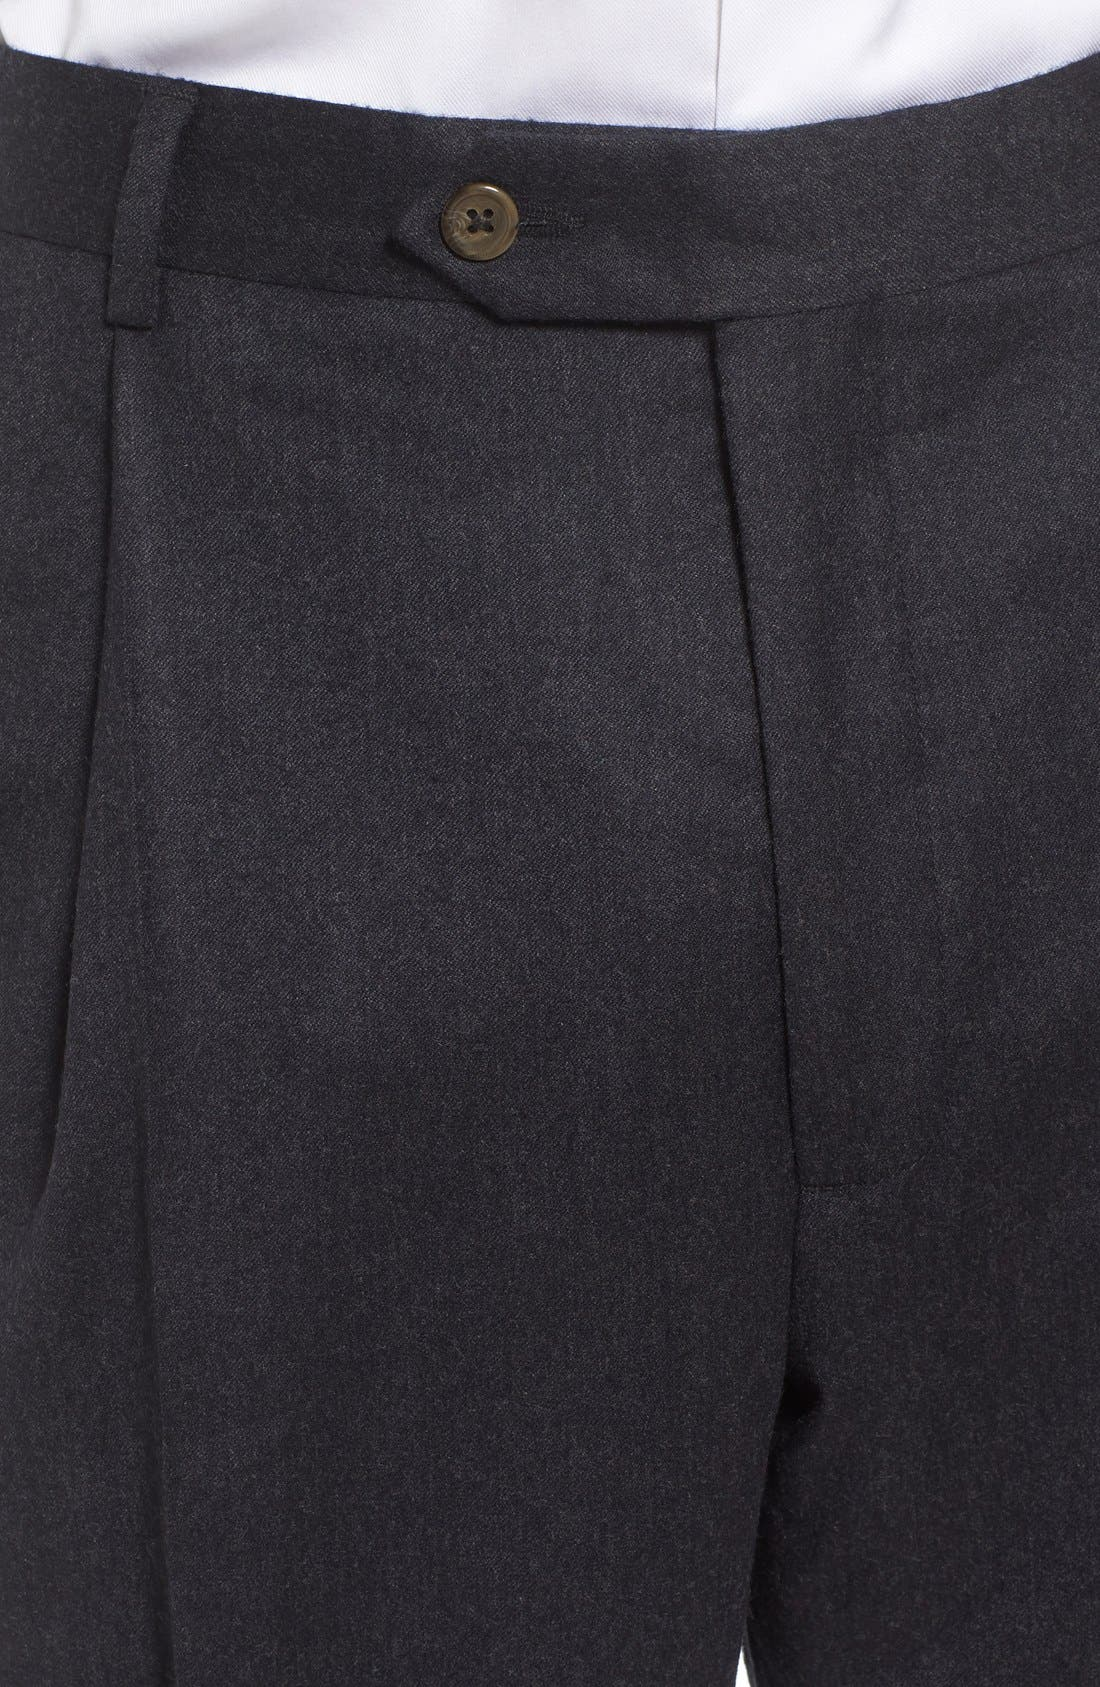 Pleated Solid Wool Trousers,                             Alternate thumbnail 5, color,                             021